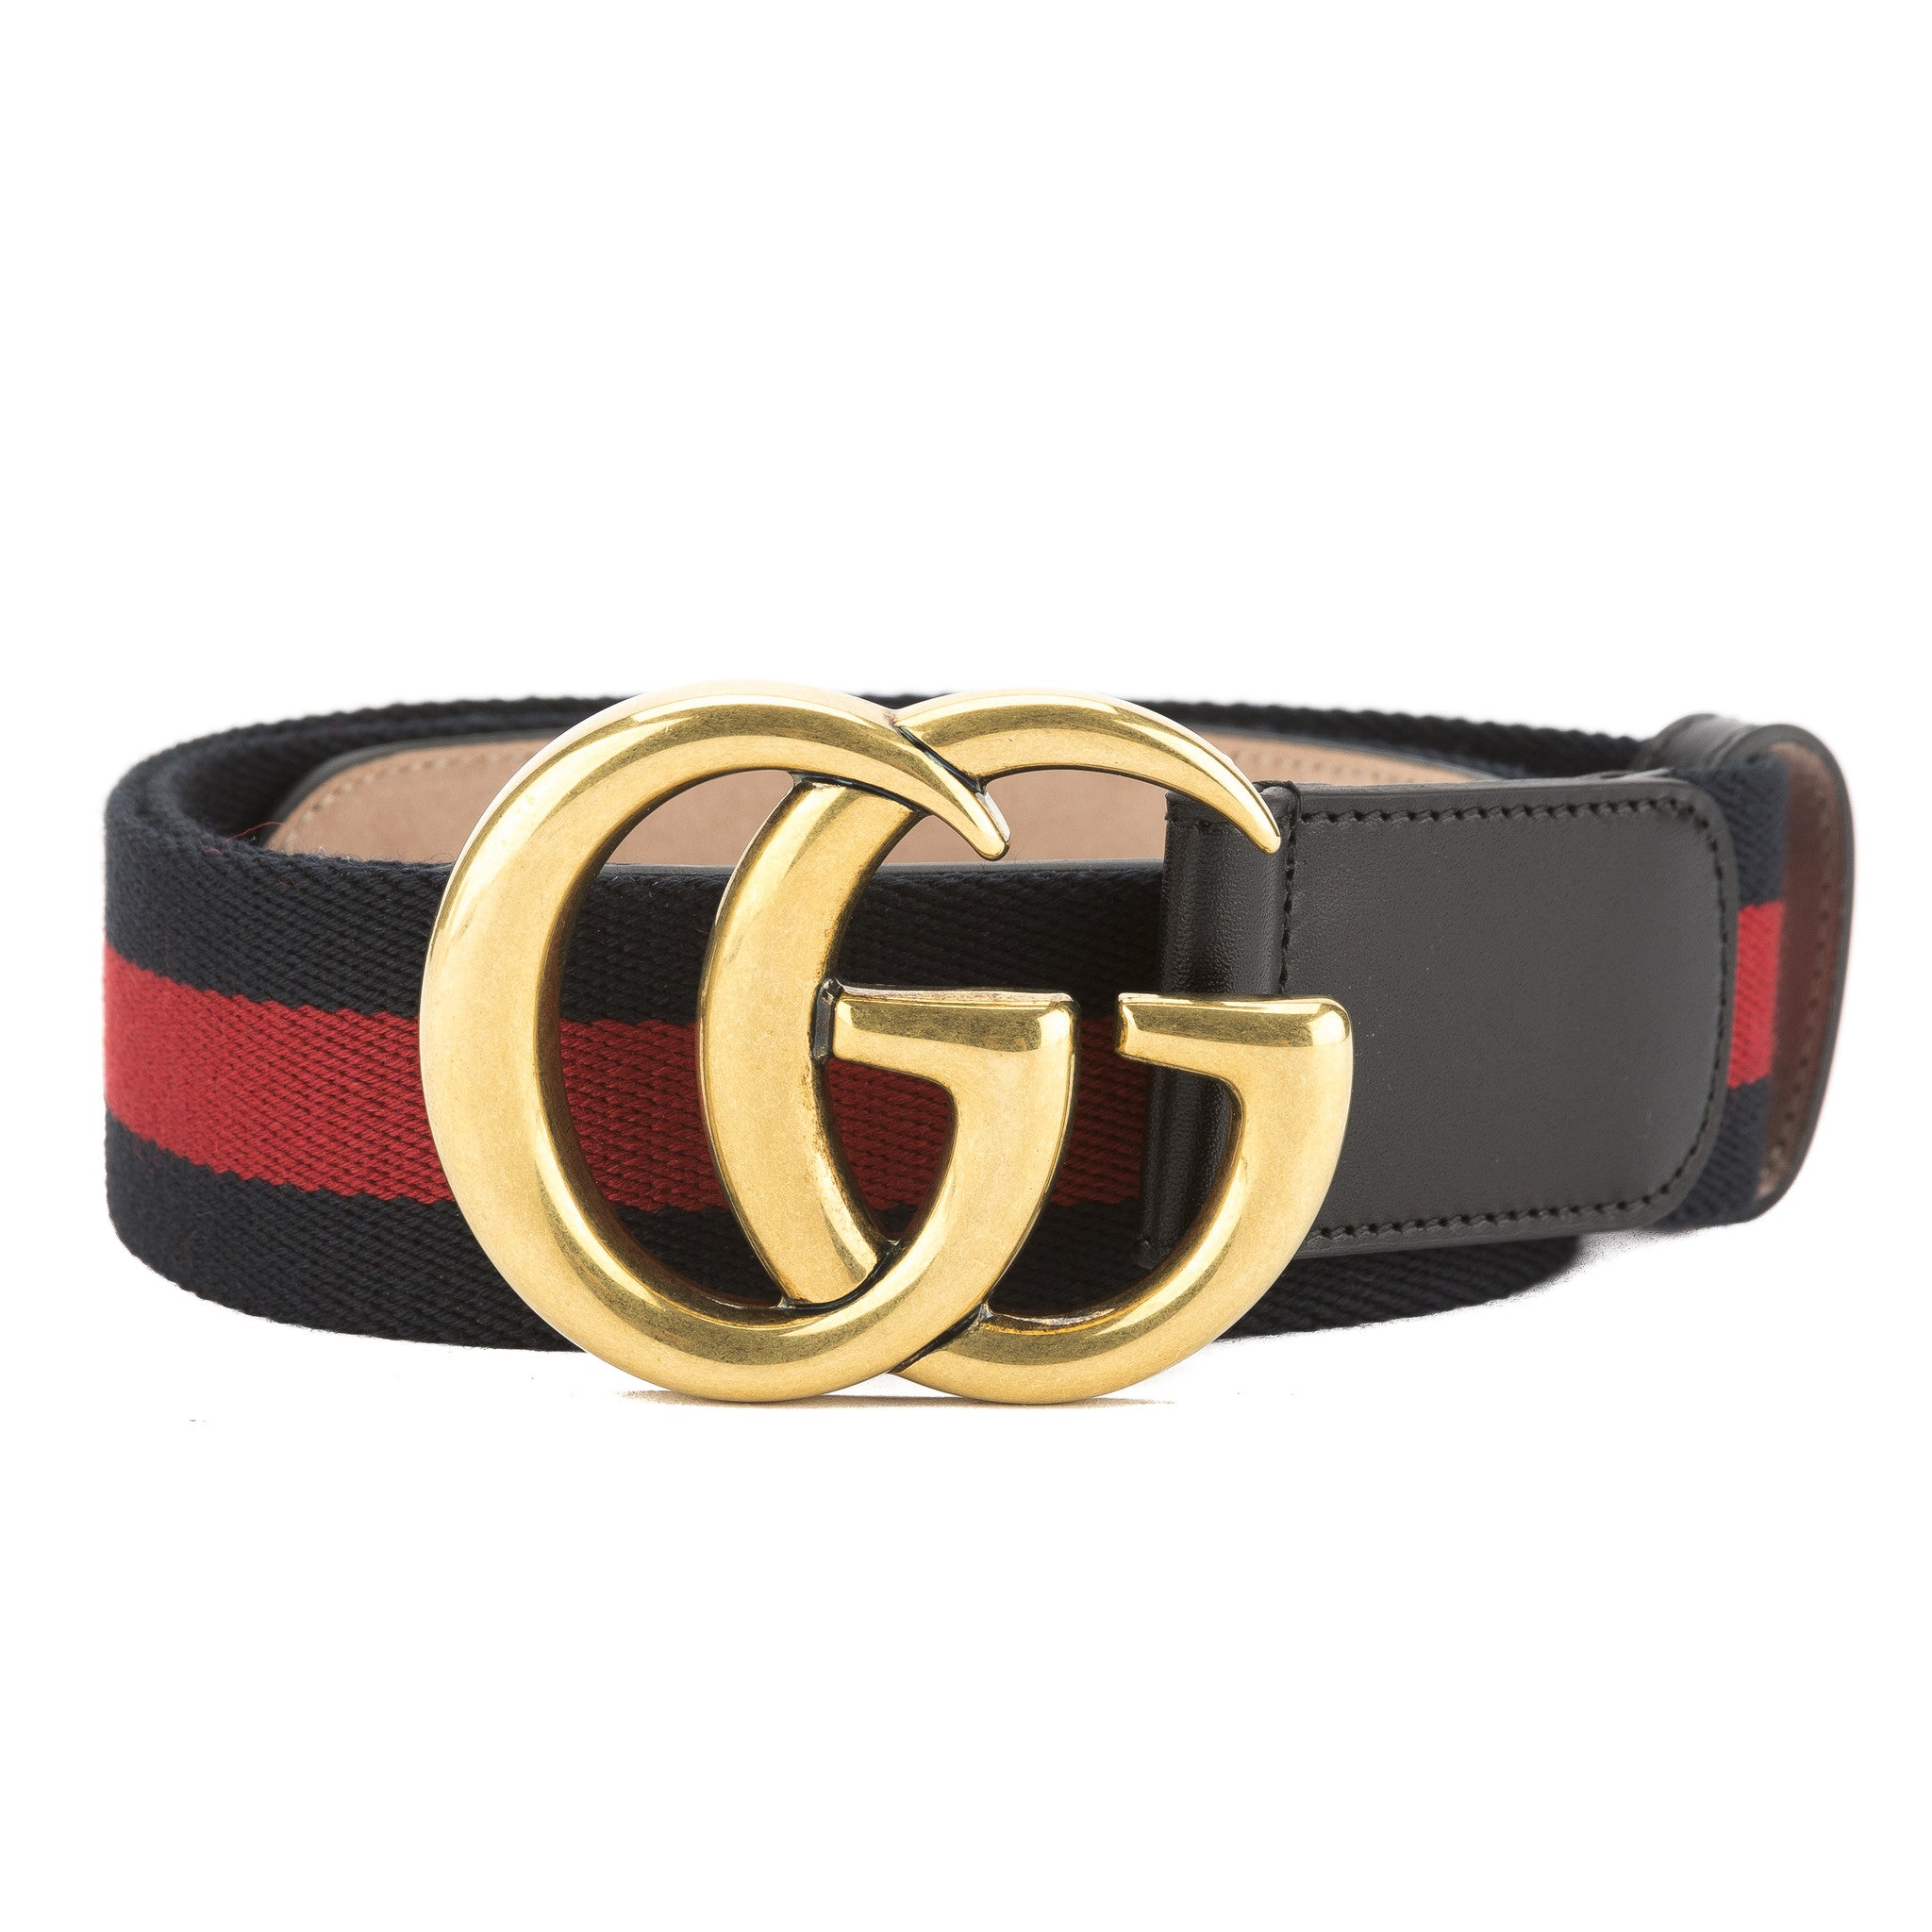 49865185de6 Gucci Blue and Red Nylon Web Belt with Double G Buckle (New with ...